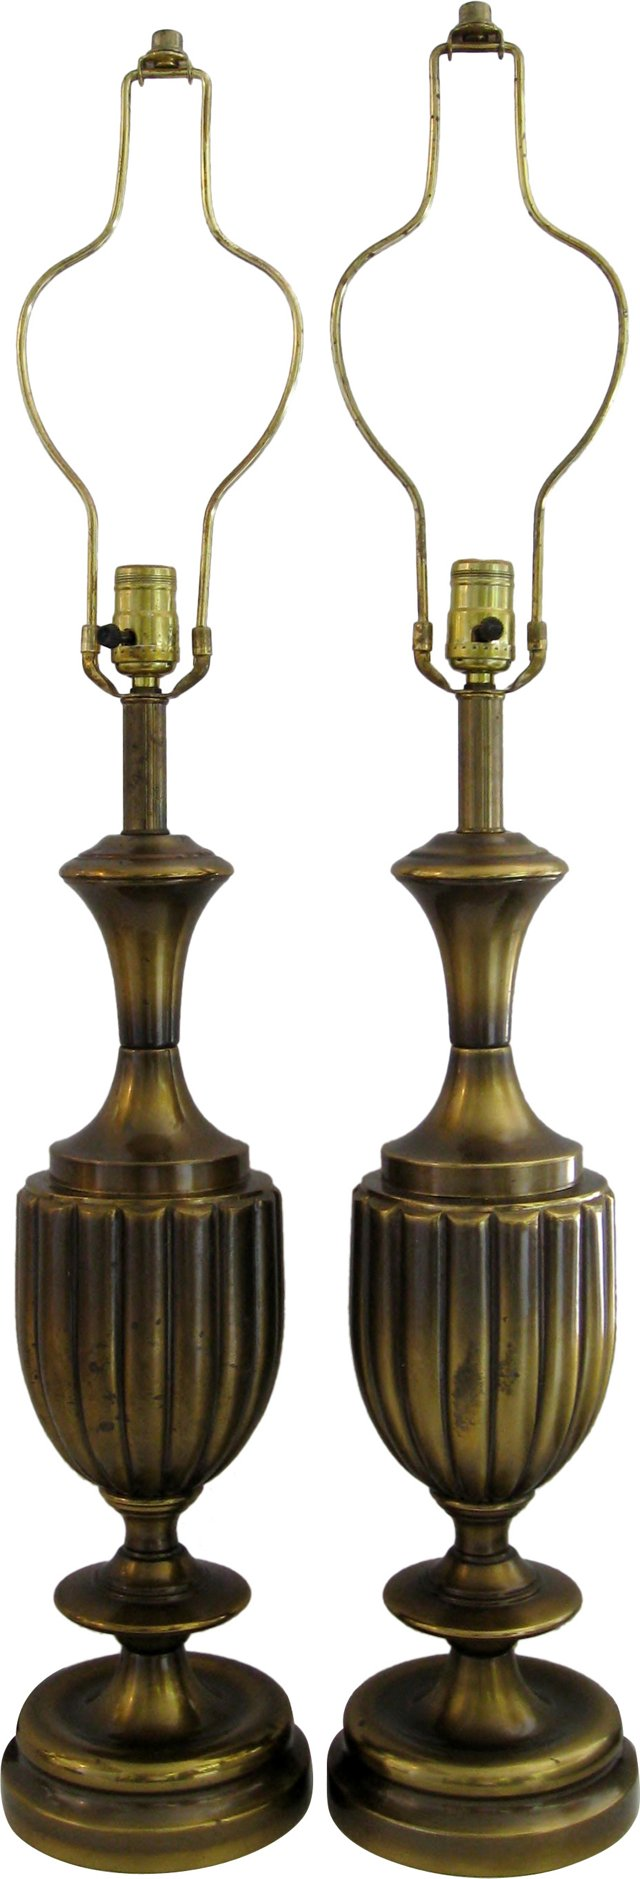 Brass Urn Lamps, Pair